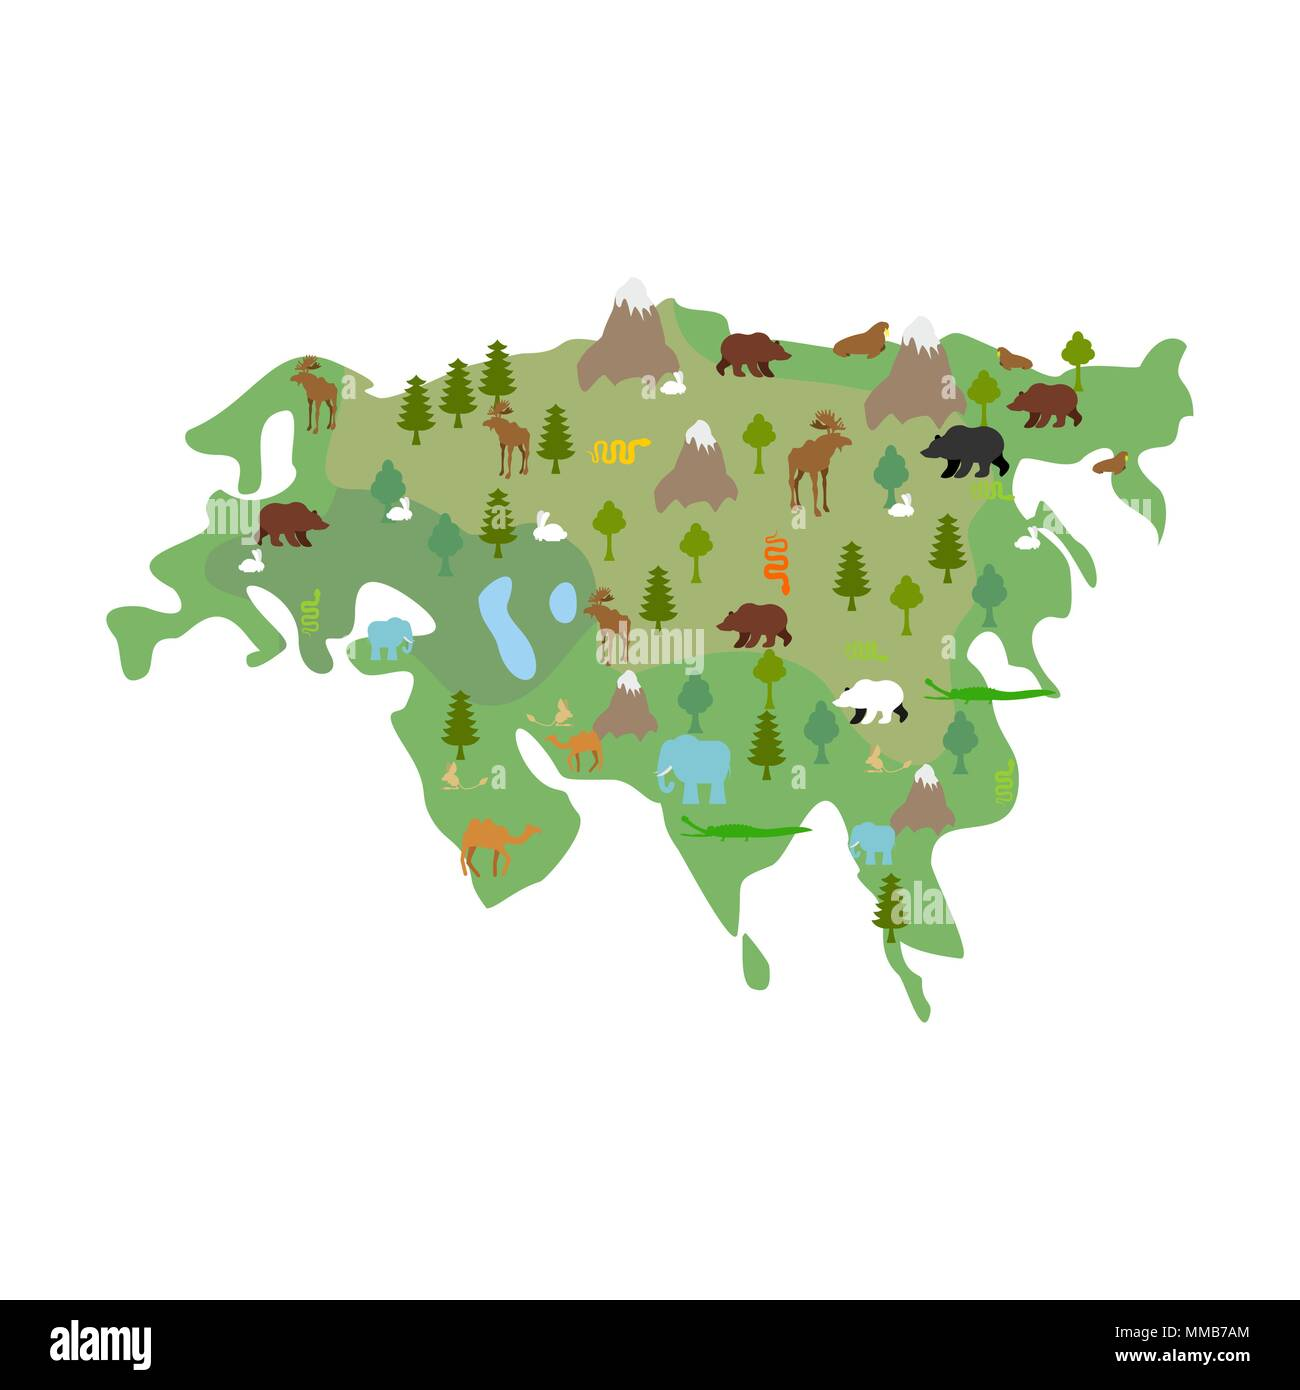 Eurasia continent Map Animal and plants. flora and fauna on mainland. Vector - Stock Image